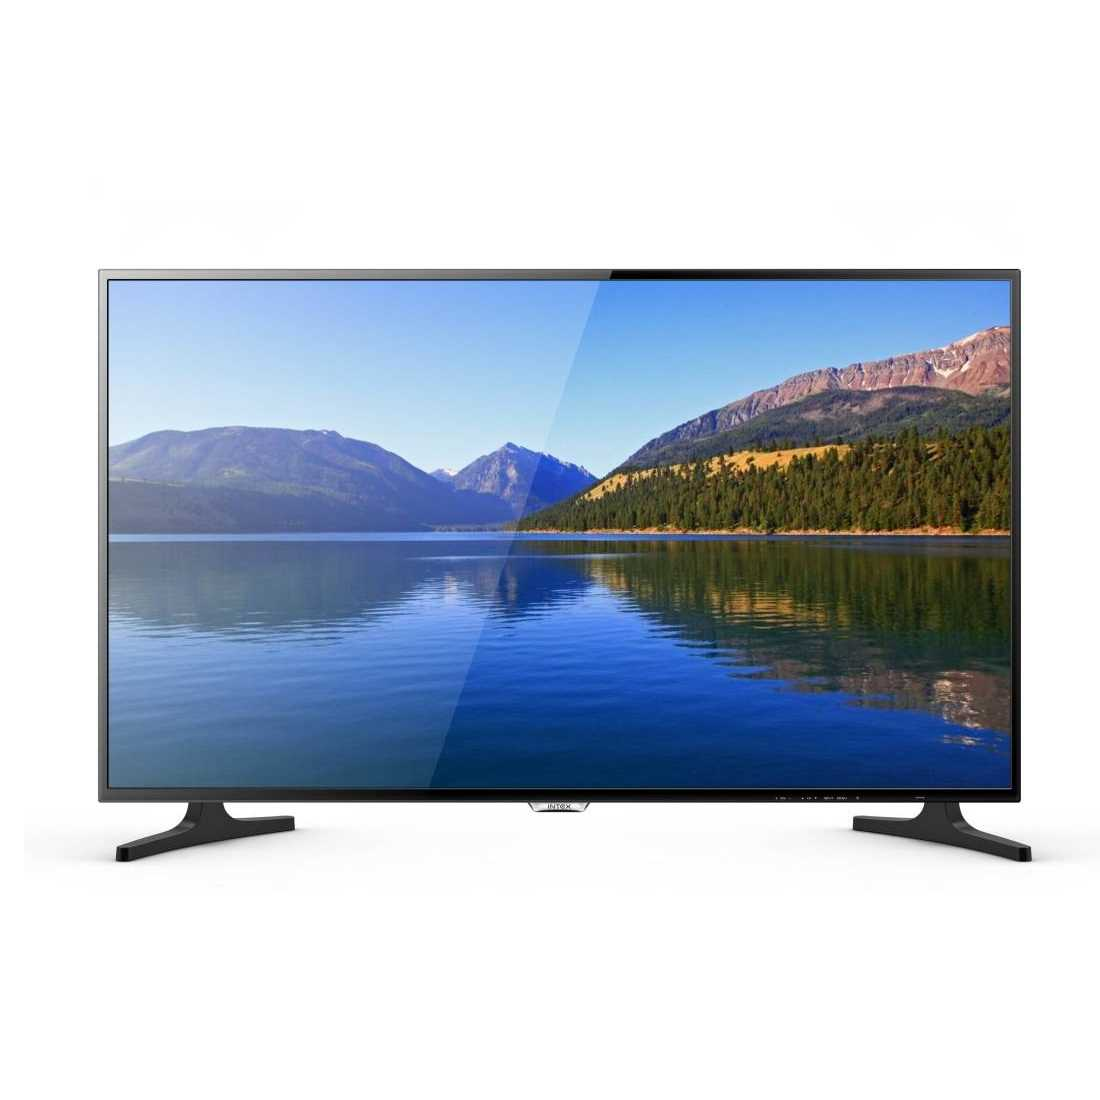 Intex LED-4018FHD 40 Inch Full HD LED Television